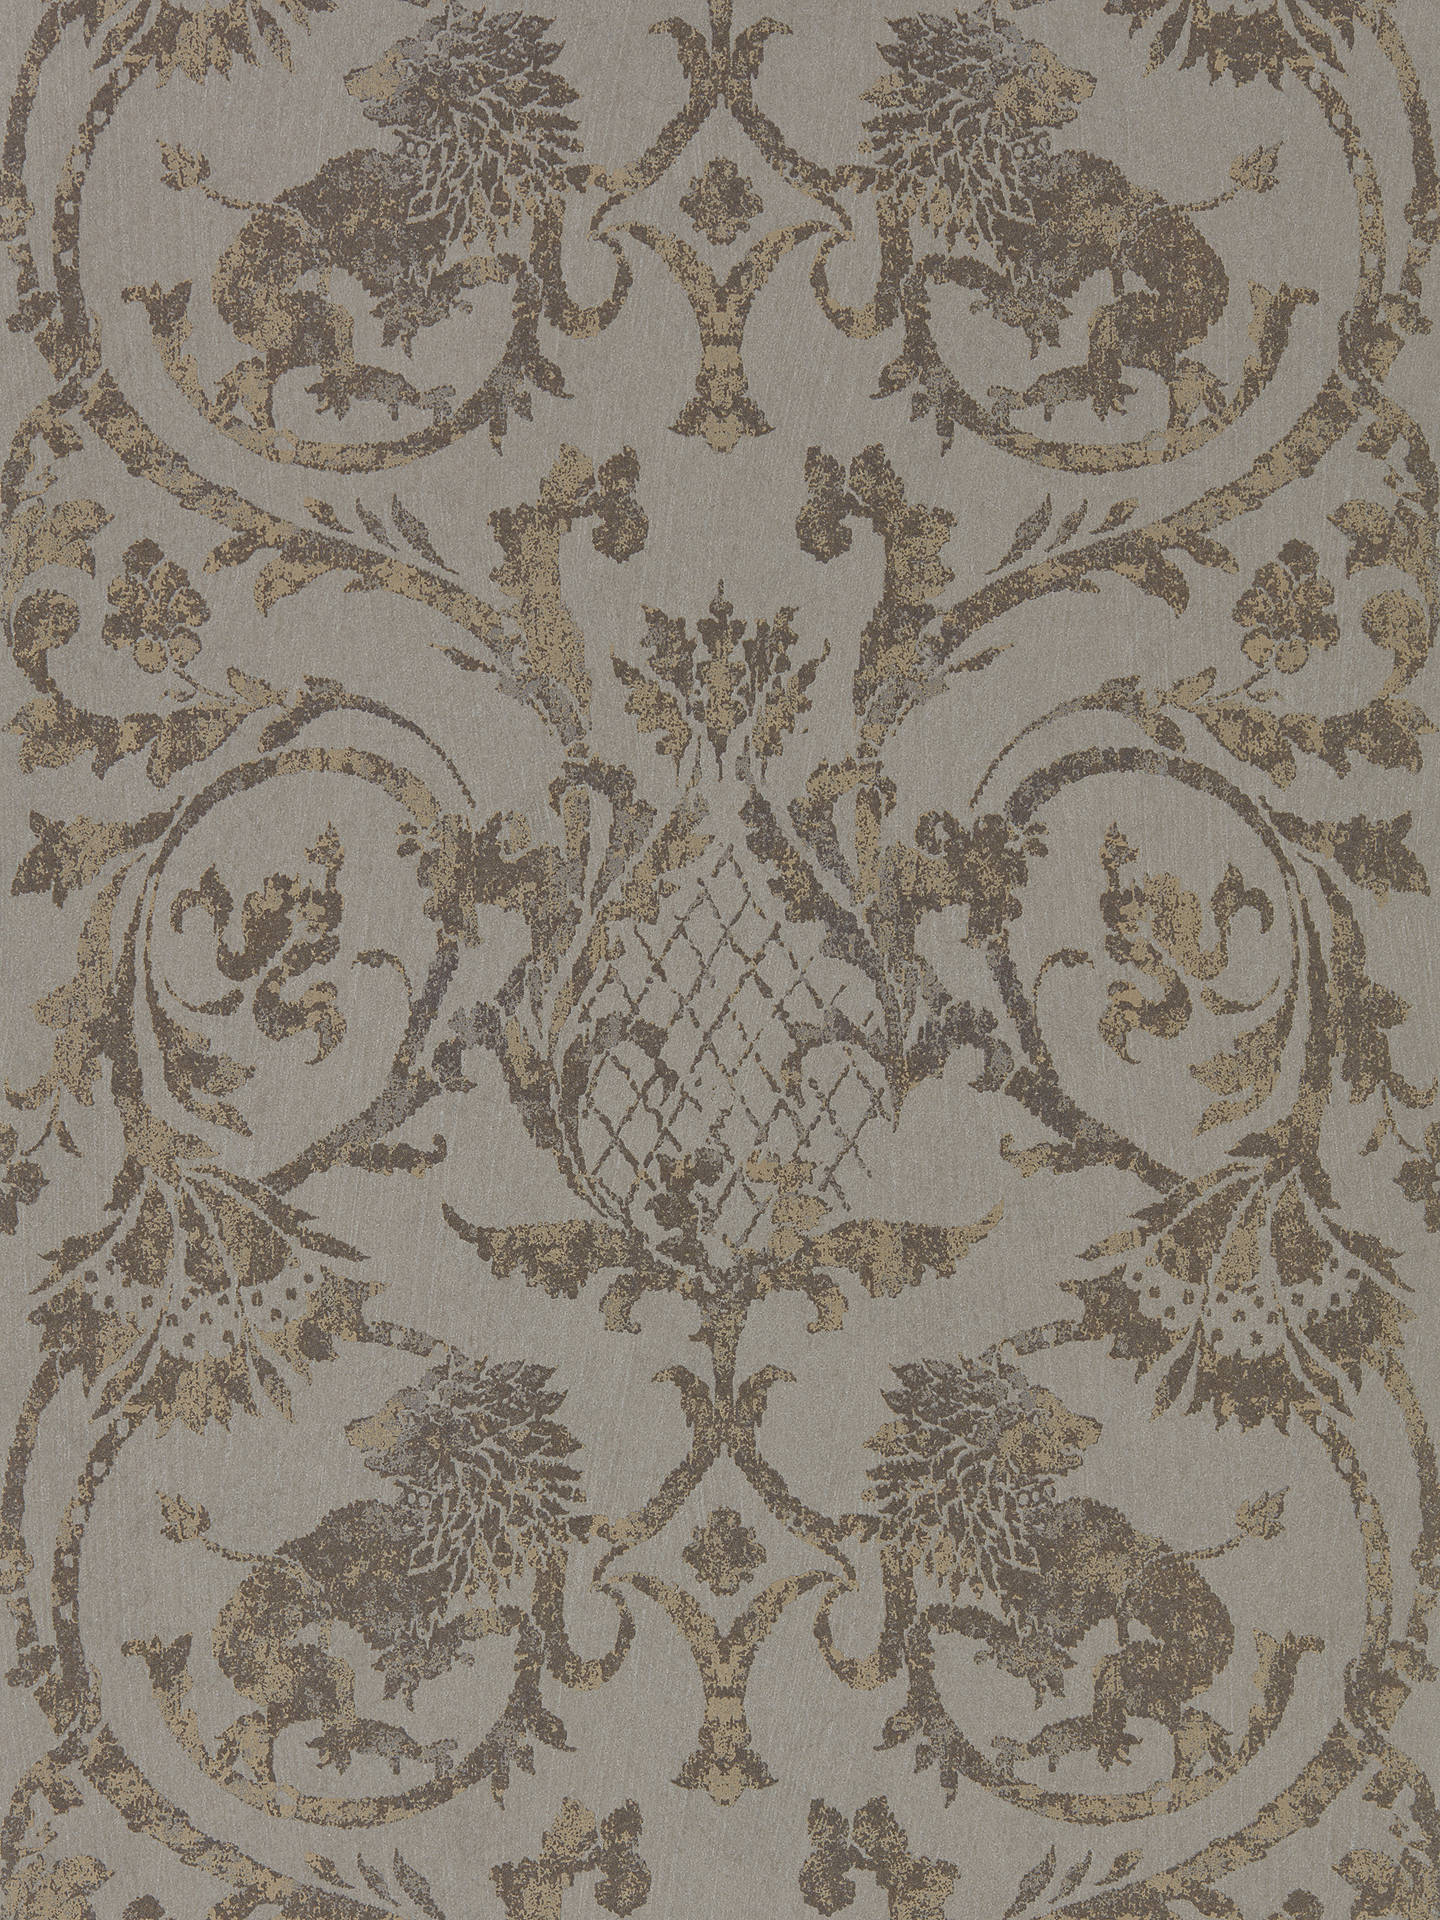 Buy Zoffany Phaedra Landseer wallpaper, Antique Bronze ZPHA312613 Online at johnlewis.com